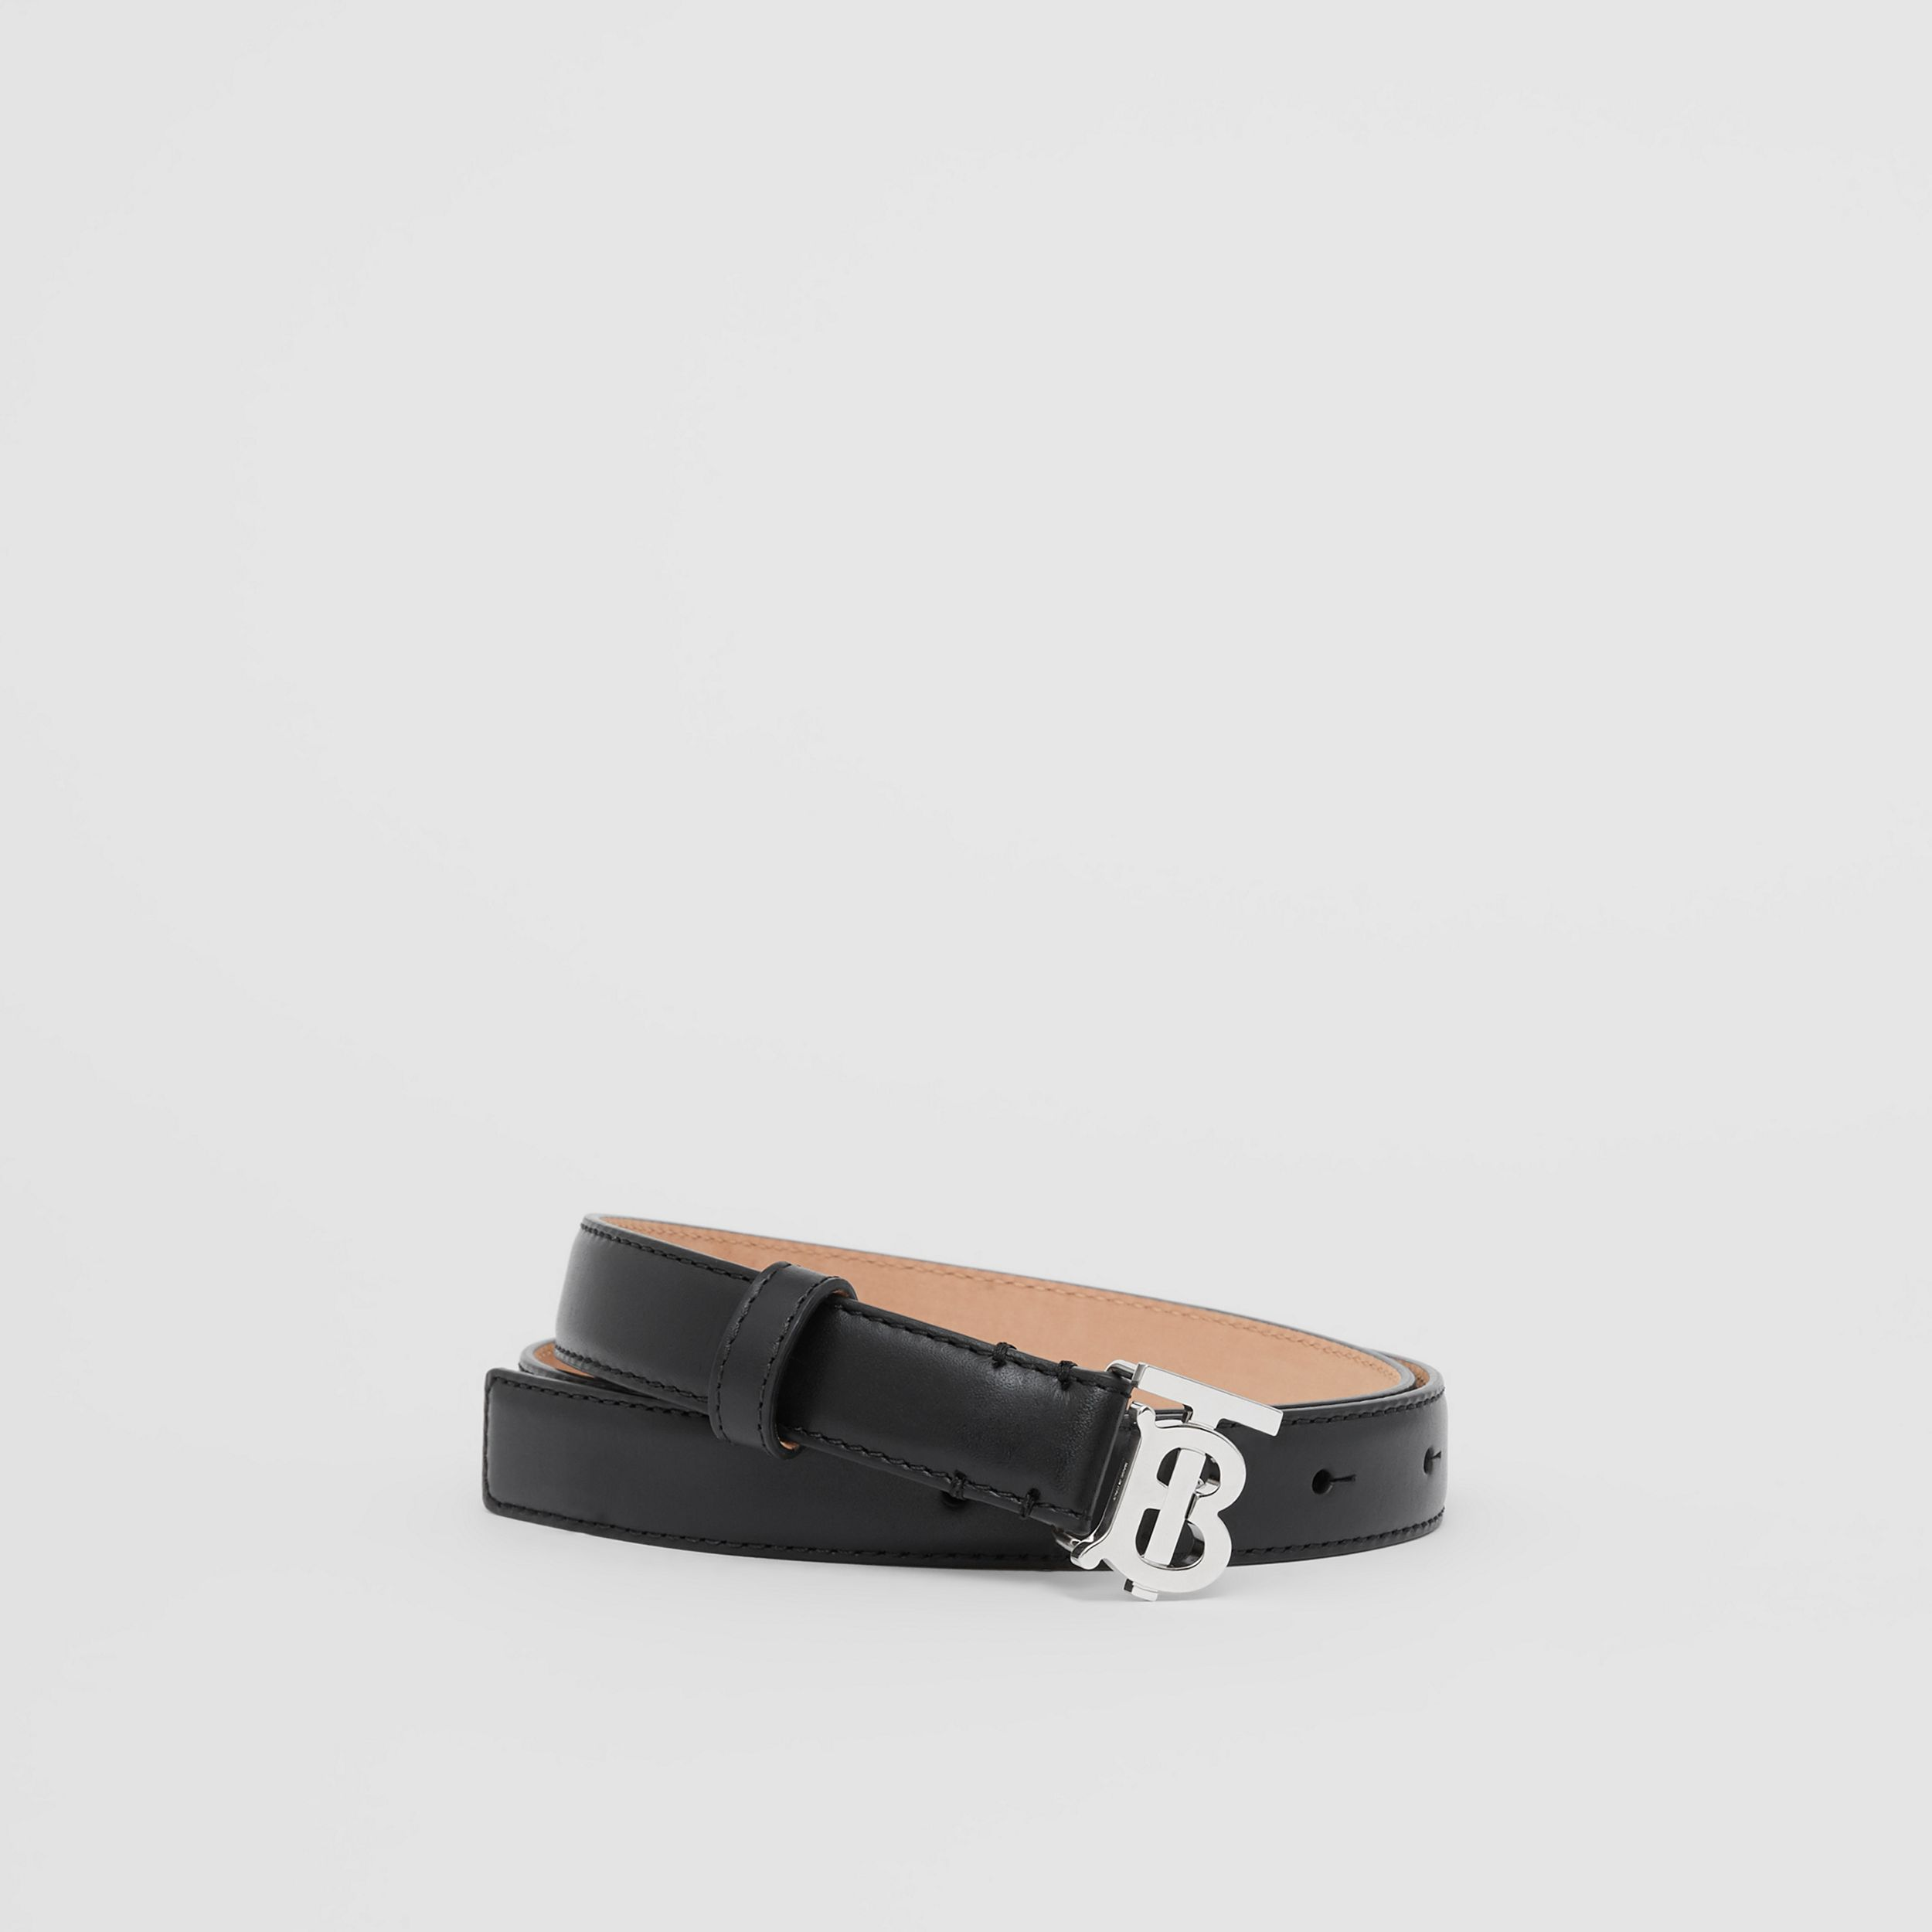 Monogram Motif Leather Belt in Black/palladio - Women | Burberry - 1